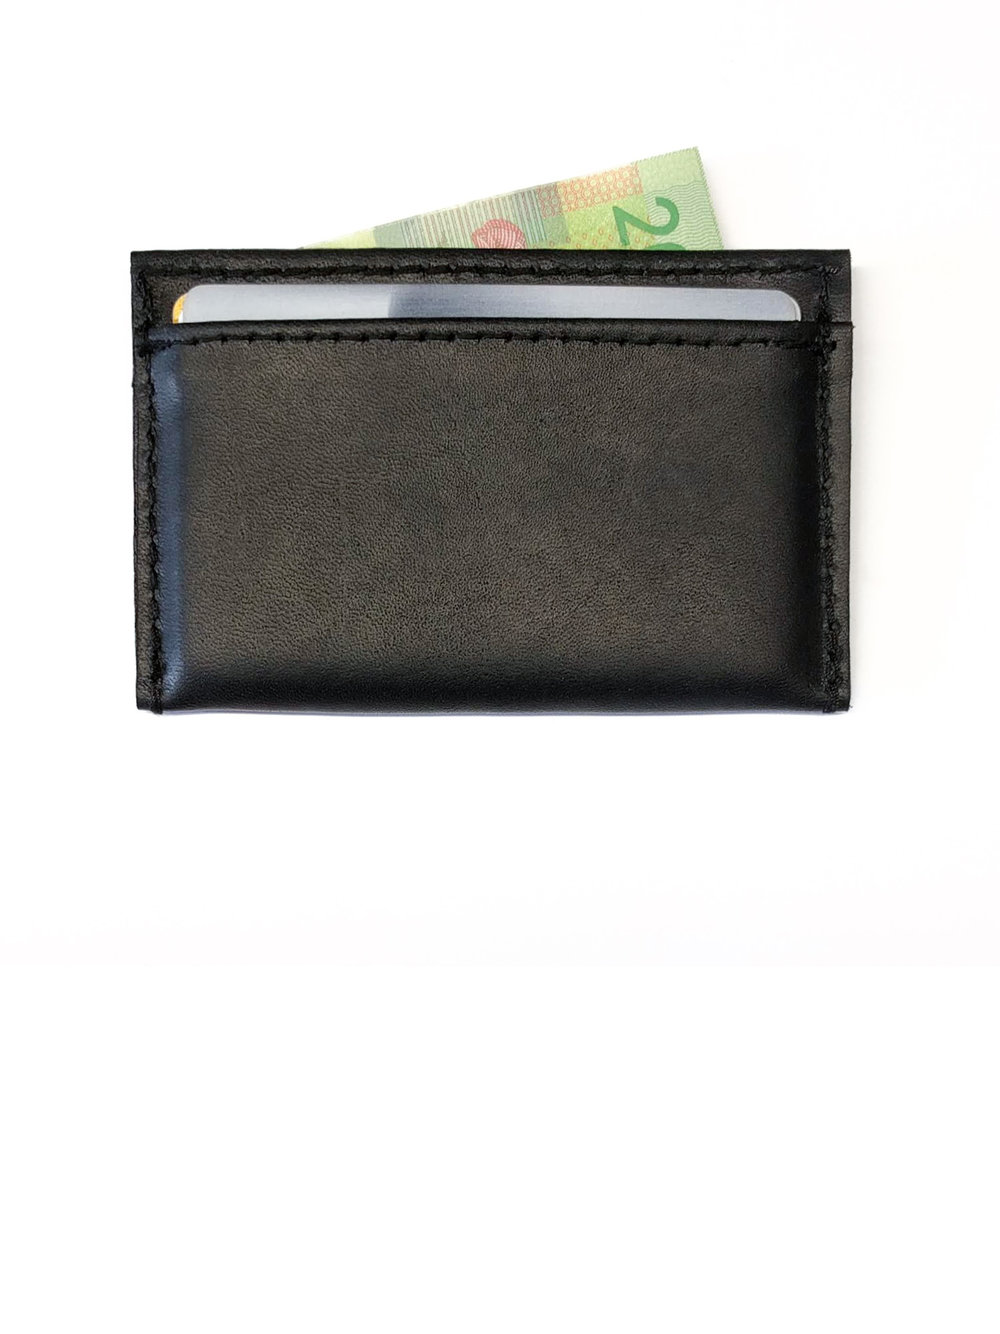 Leather card case - 30.00$